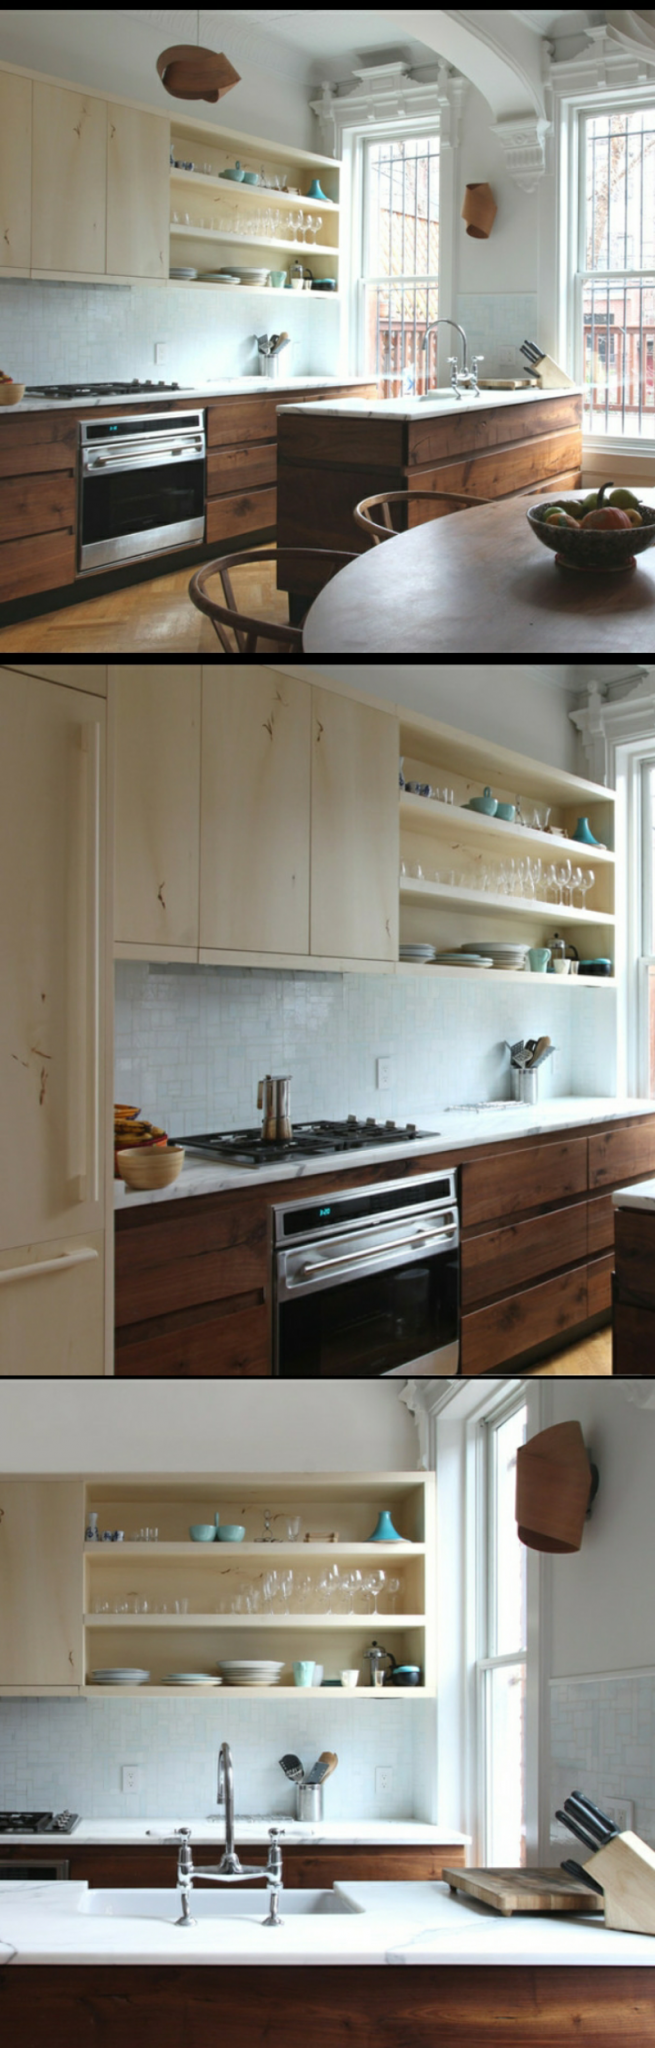 Galley Kitchen Remodel Ideas (Small Galley Kitchen Design, Makeovers, and Plans with Pictures) #beforeafter #layout #small #interiordesign #countertops #floorplans #window #openshelving #diningrooms #butcherblocks #galleykitchenlayouts